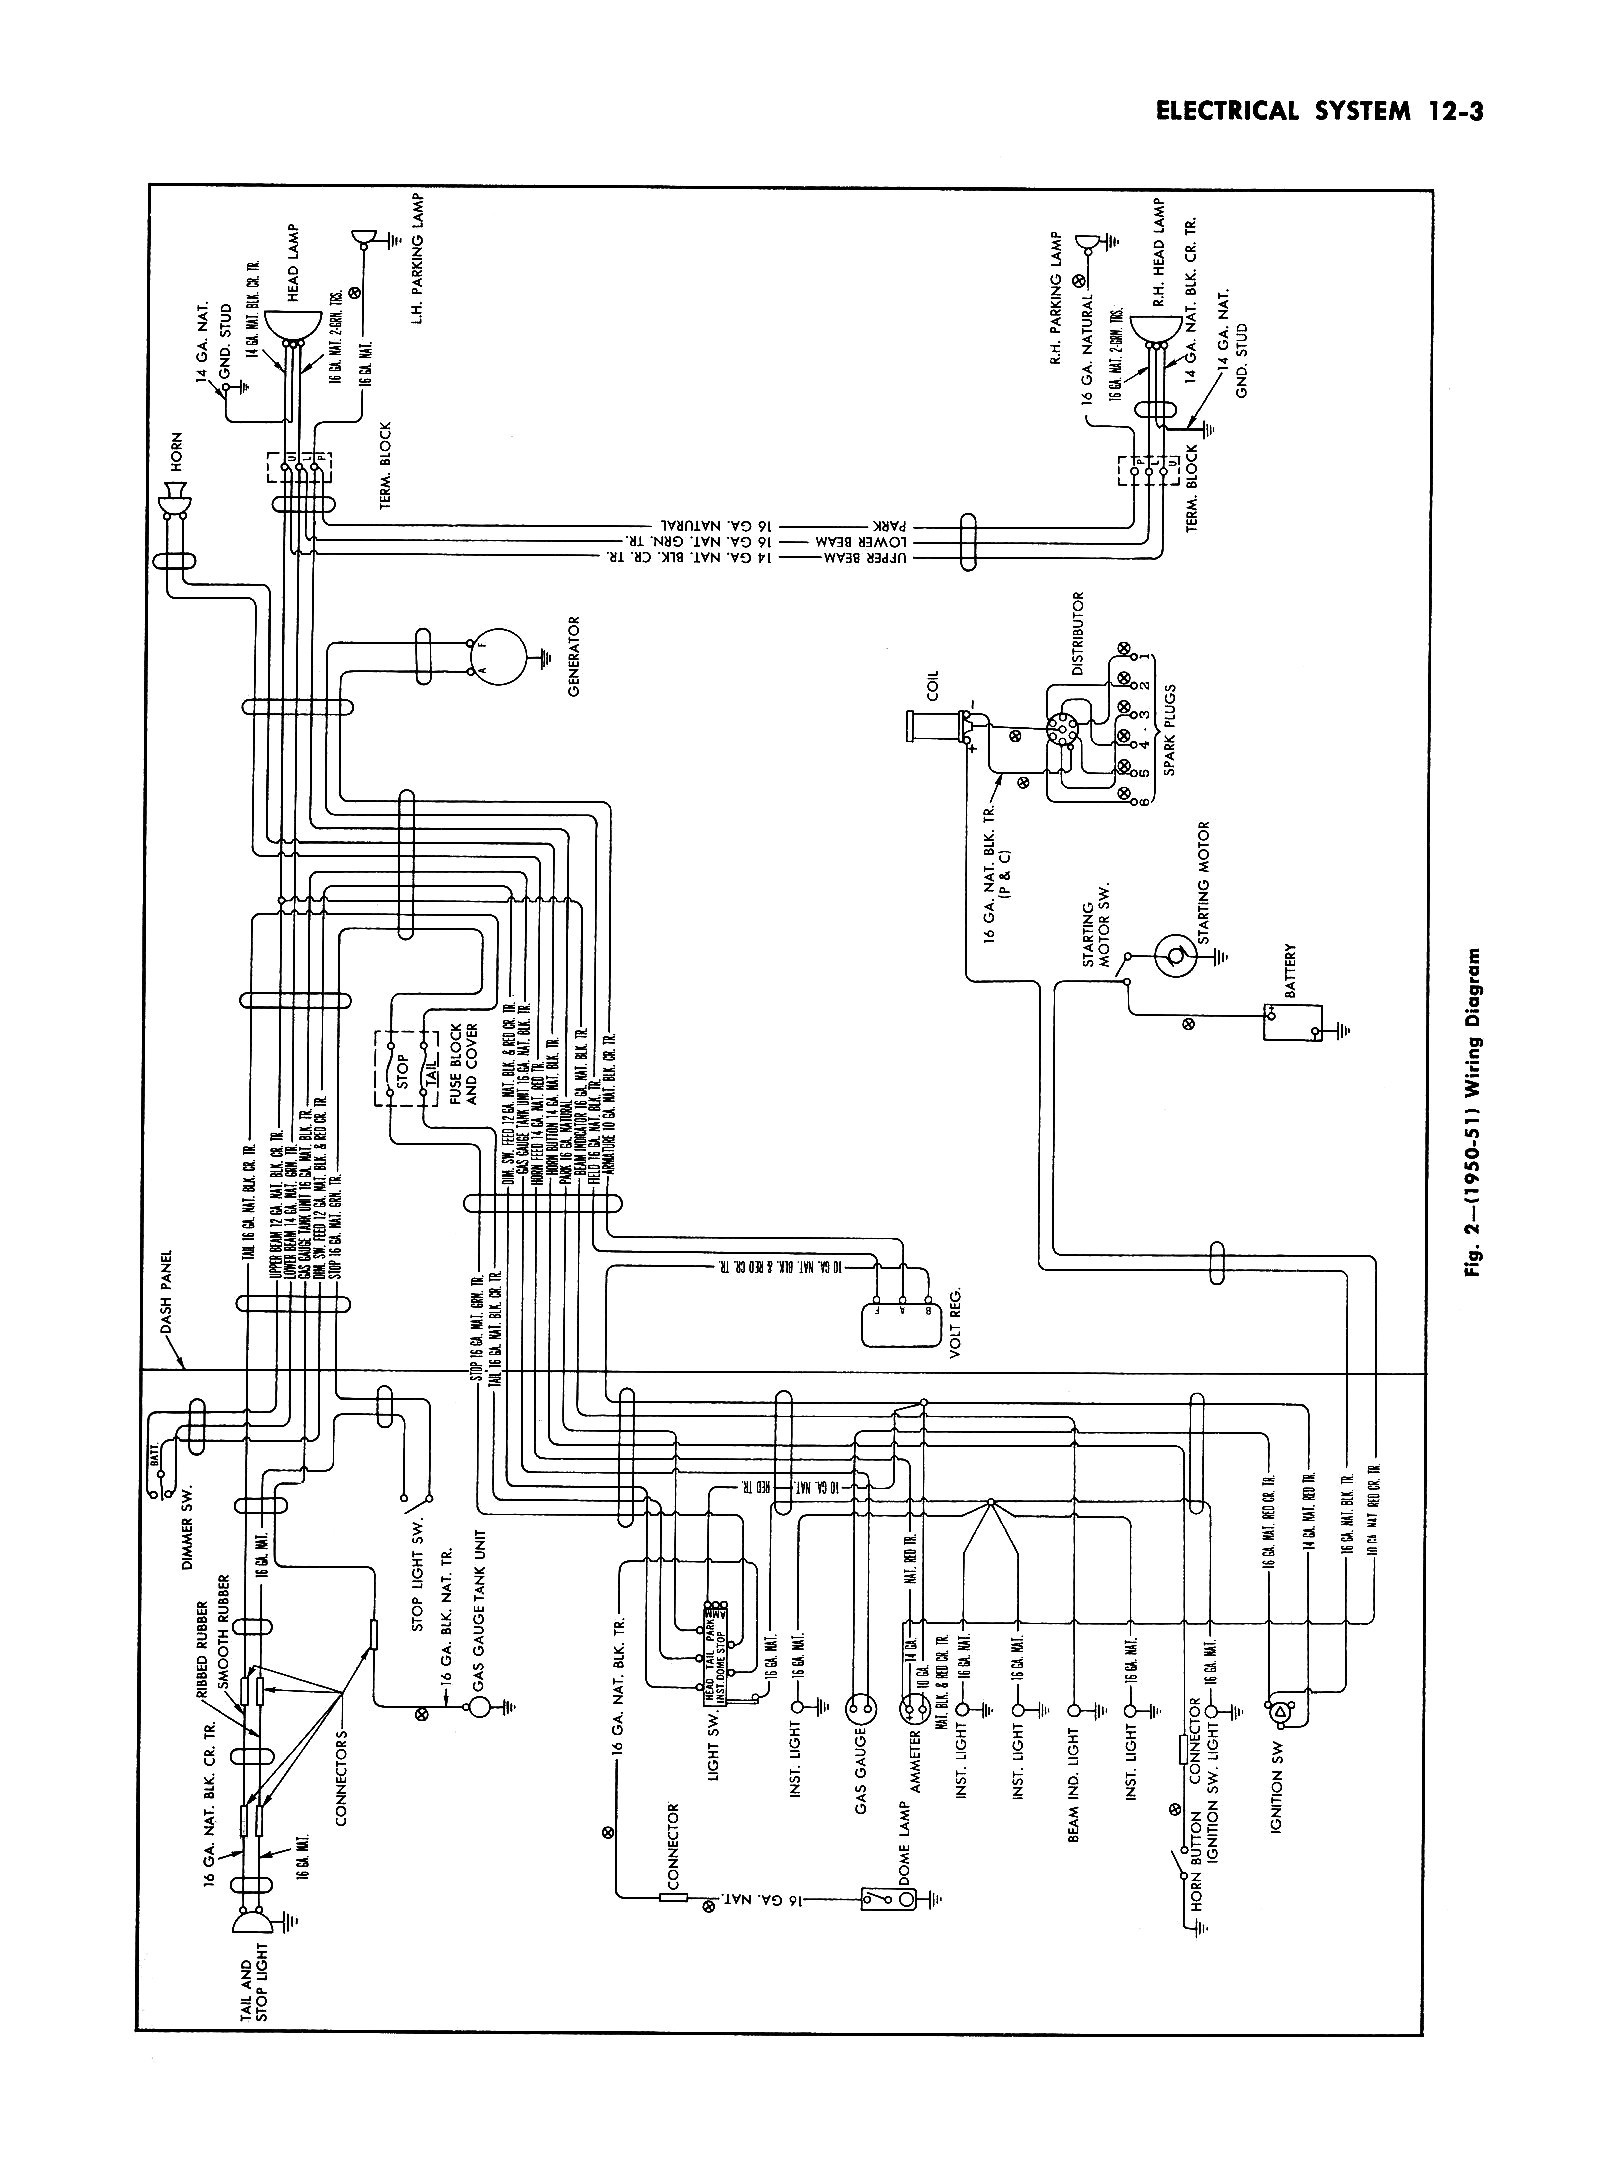 Chevy Truck Tail Light Wiring Diagram 89 Chevy 4×4 Wiring